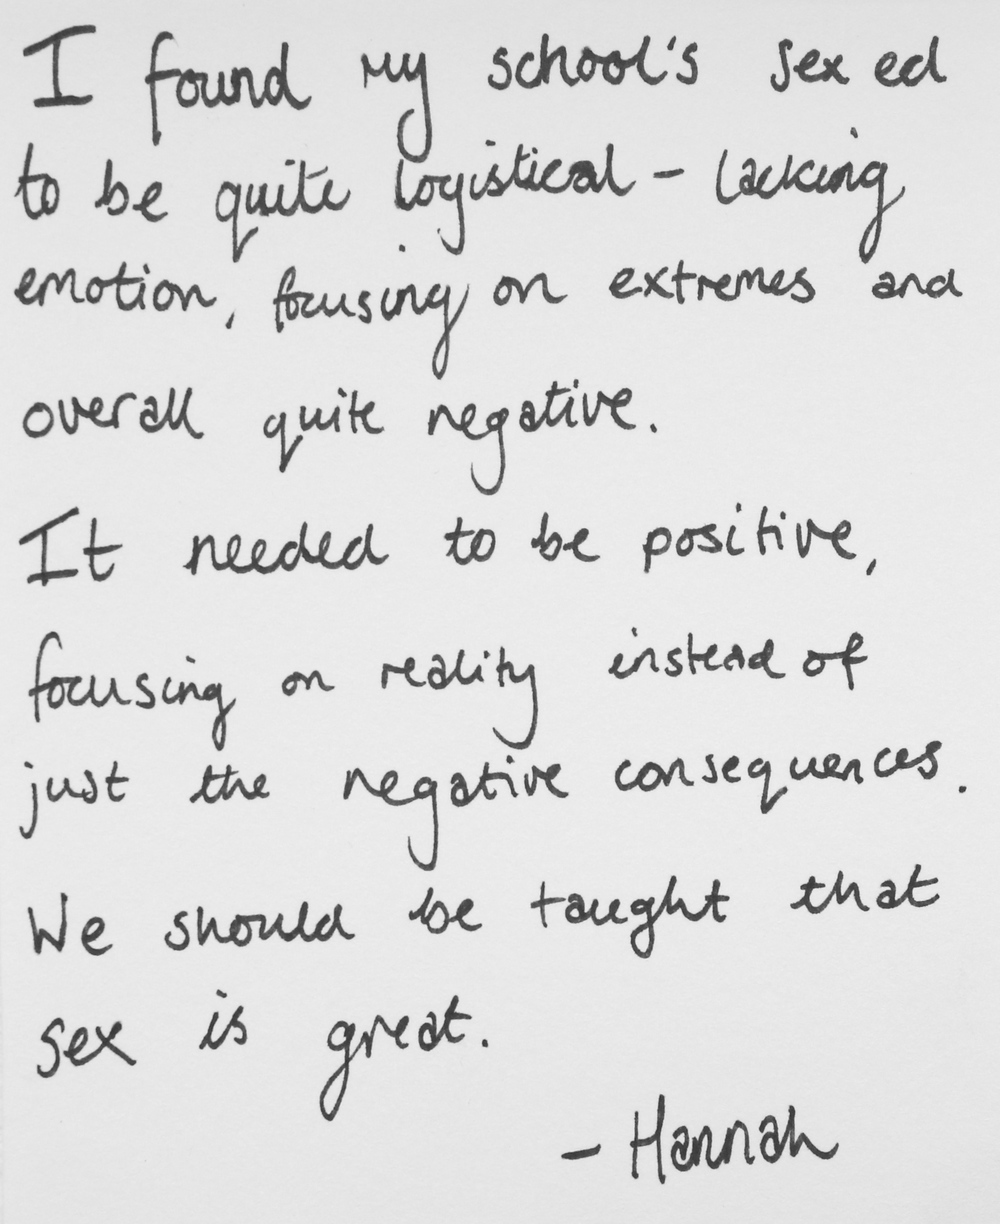 I found my school's sex ed to be quite logistical- lacking emotion, focusing on extremes and overall quite negative. It needed to be positive, focusing on reality instead of just the negative consequences. We should be taught that sex is great. -Hannah